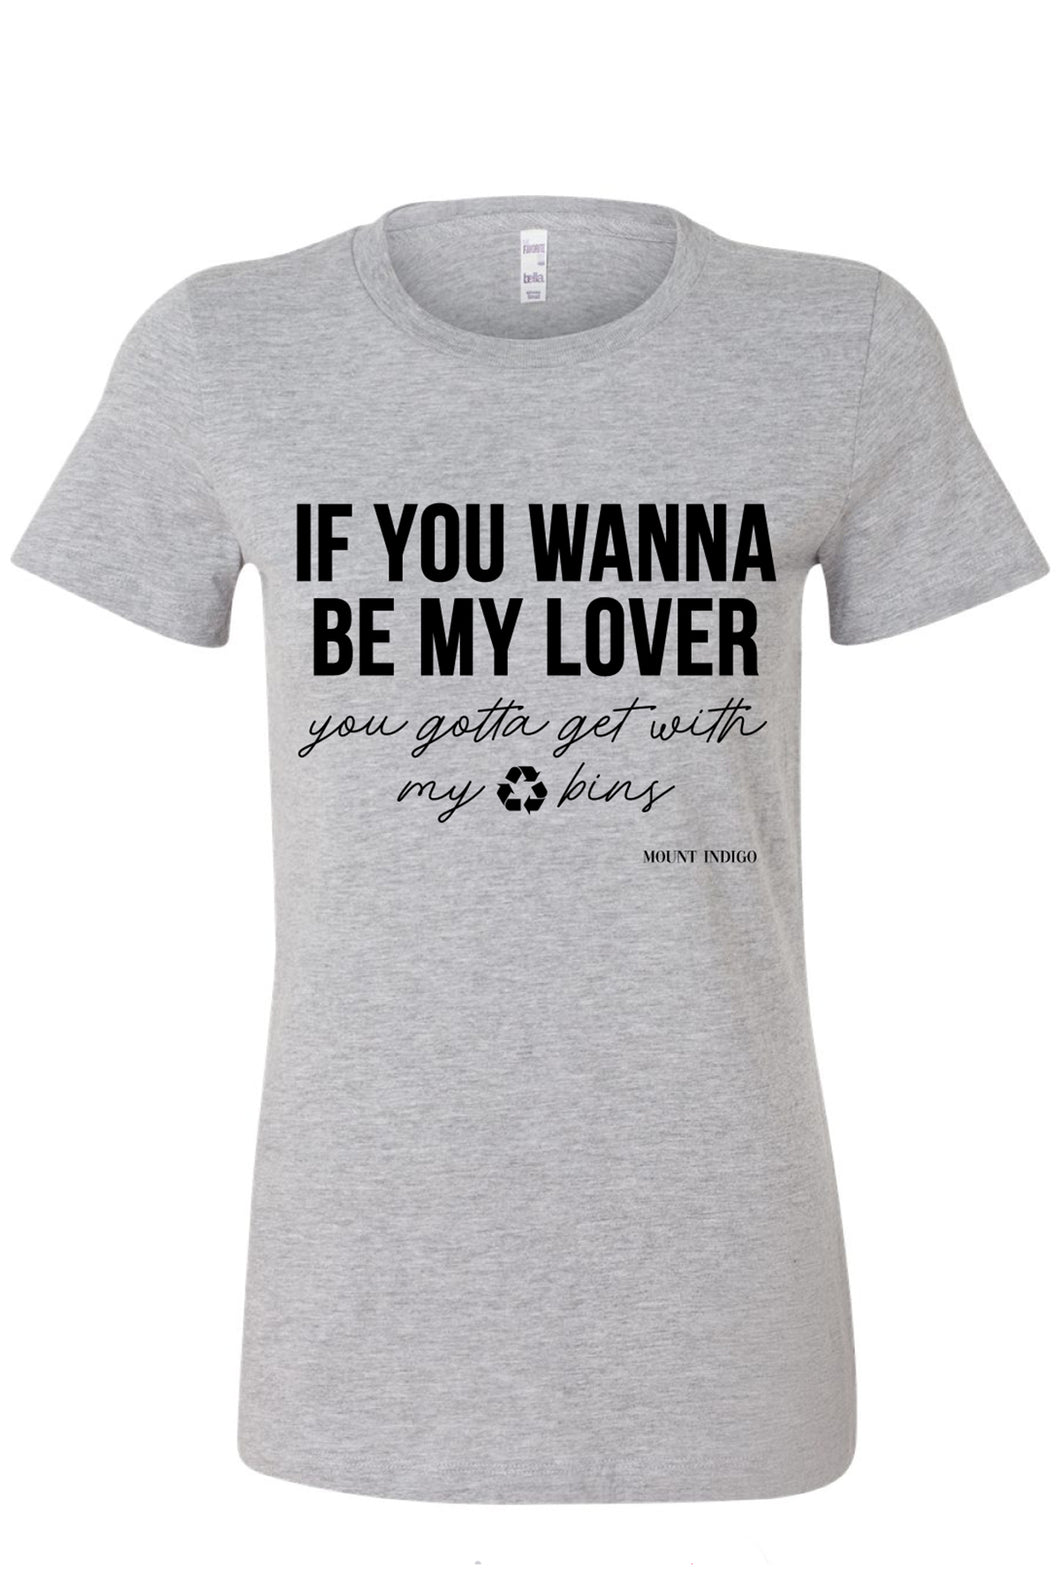 If You Wanna Be My Lover Tee